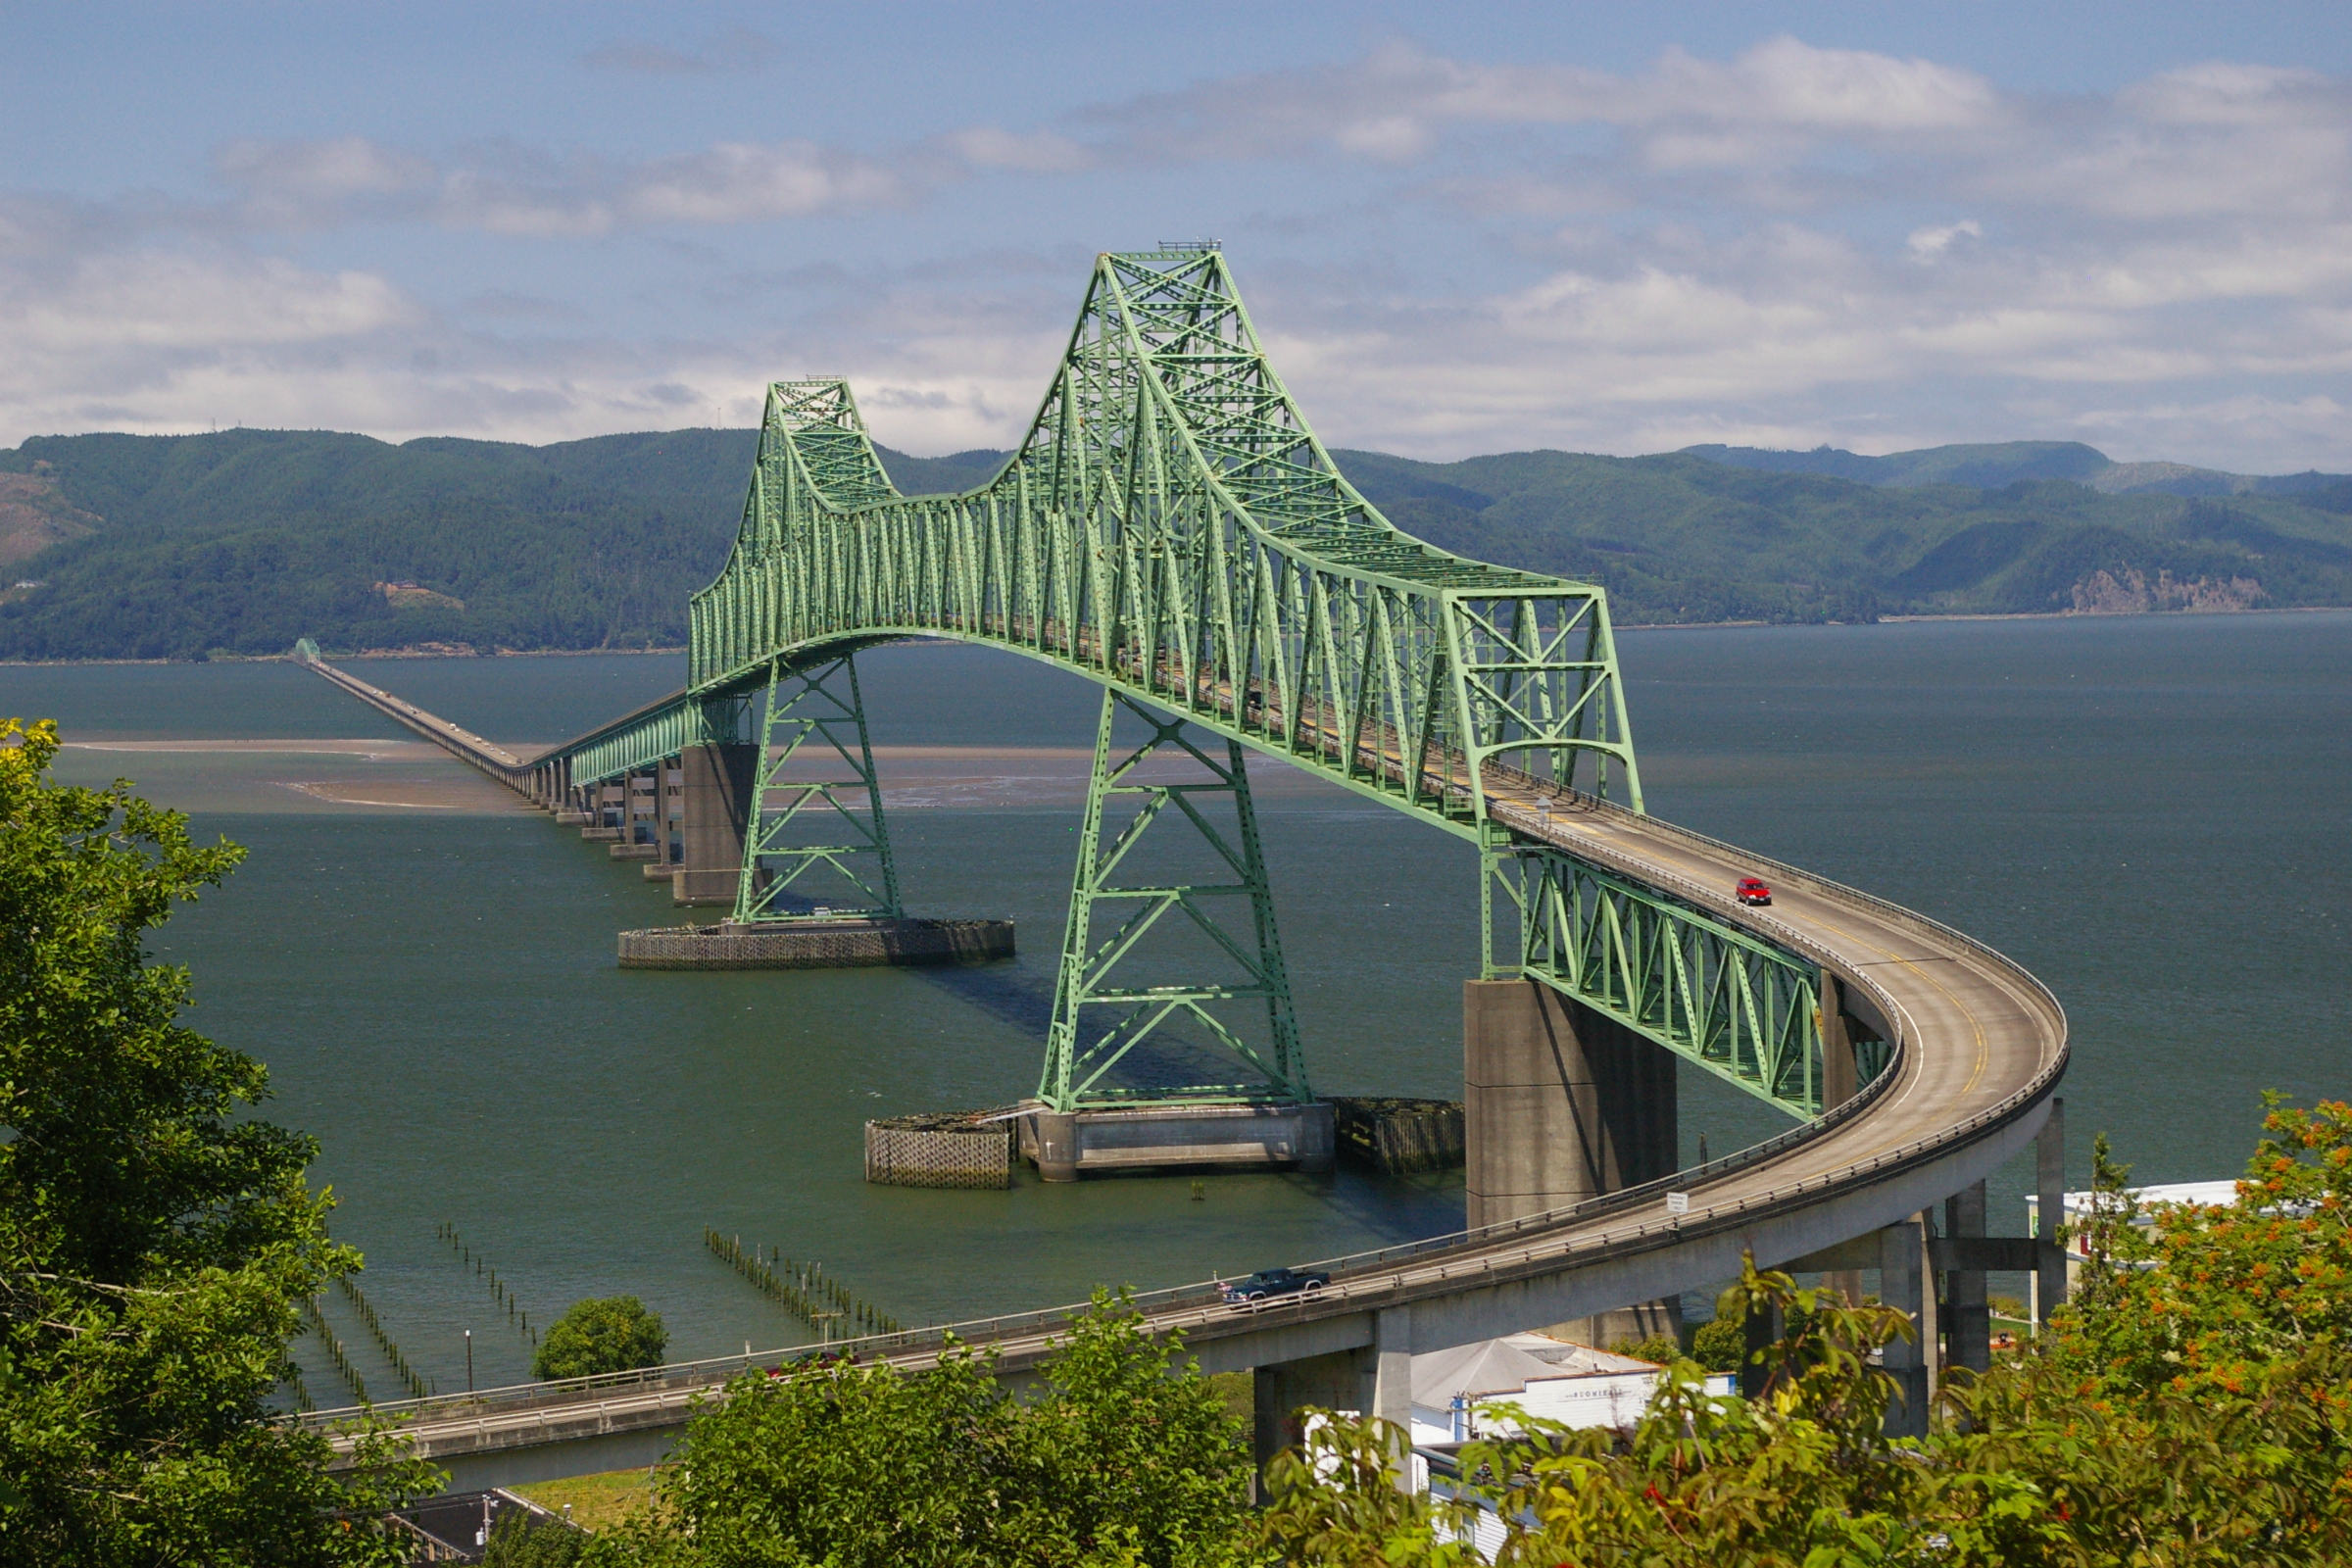 https://upload.wikimedia.org/wikipedia/commons/1/15/Astoria_-_Megler_Bridge_in_2009.jpg